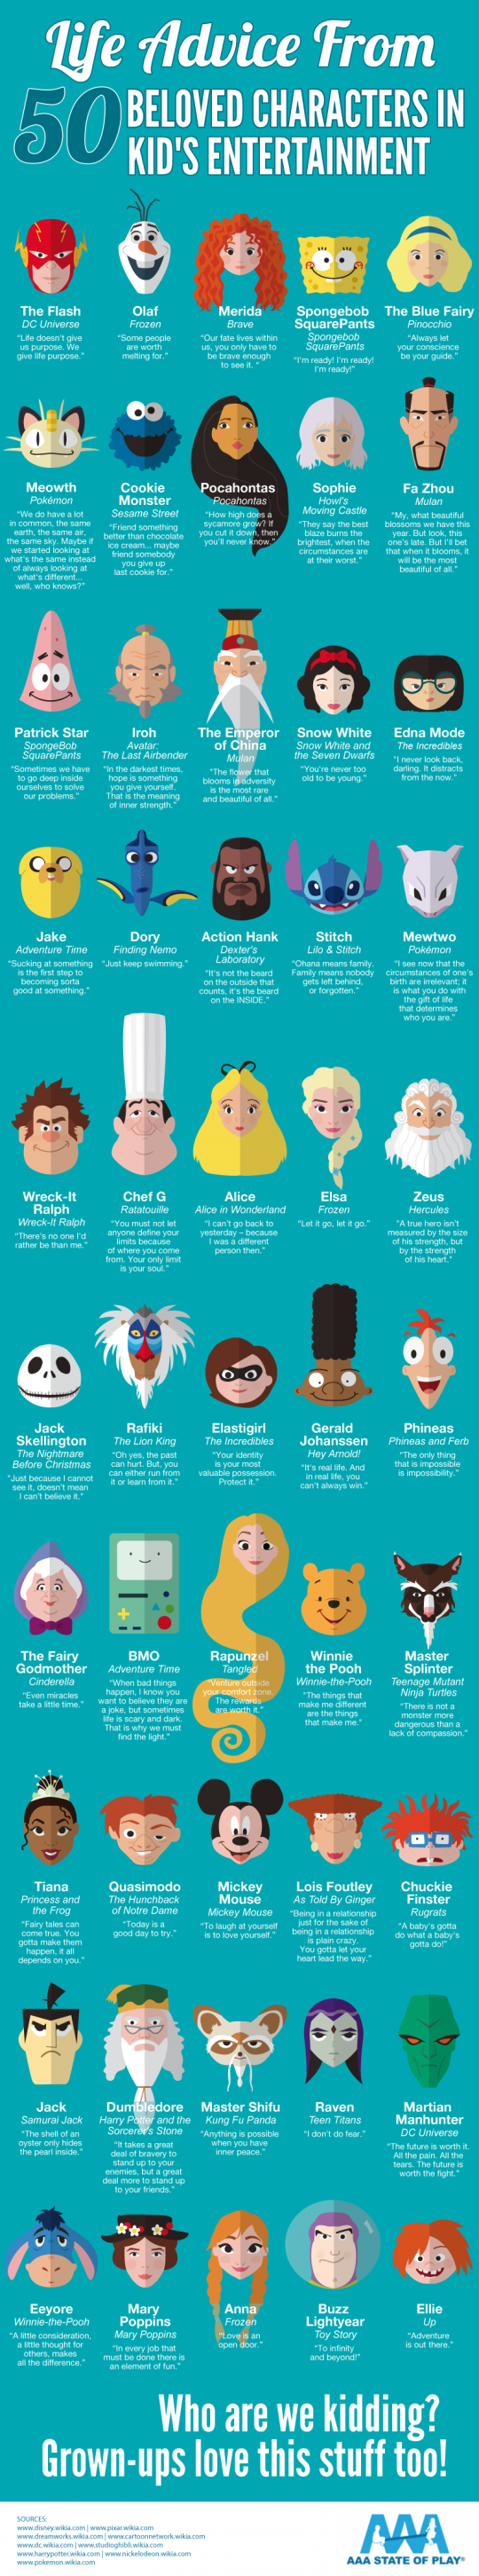 Life Advice from 50 Beloved Characters in Kid